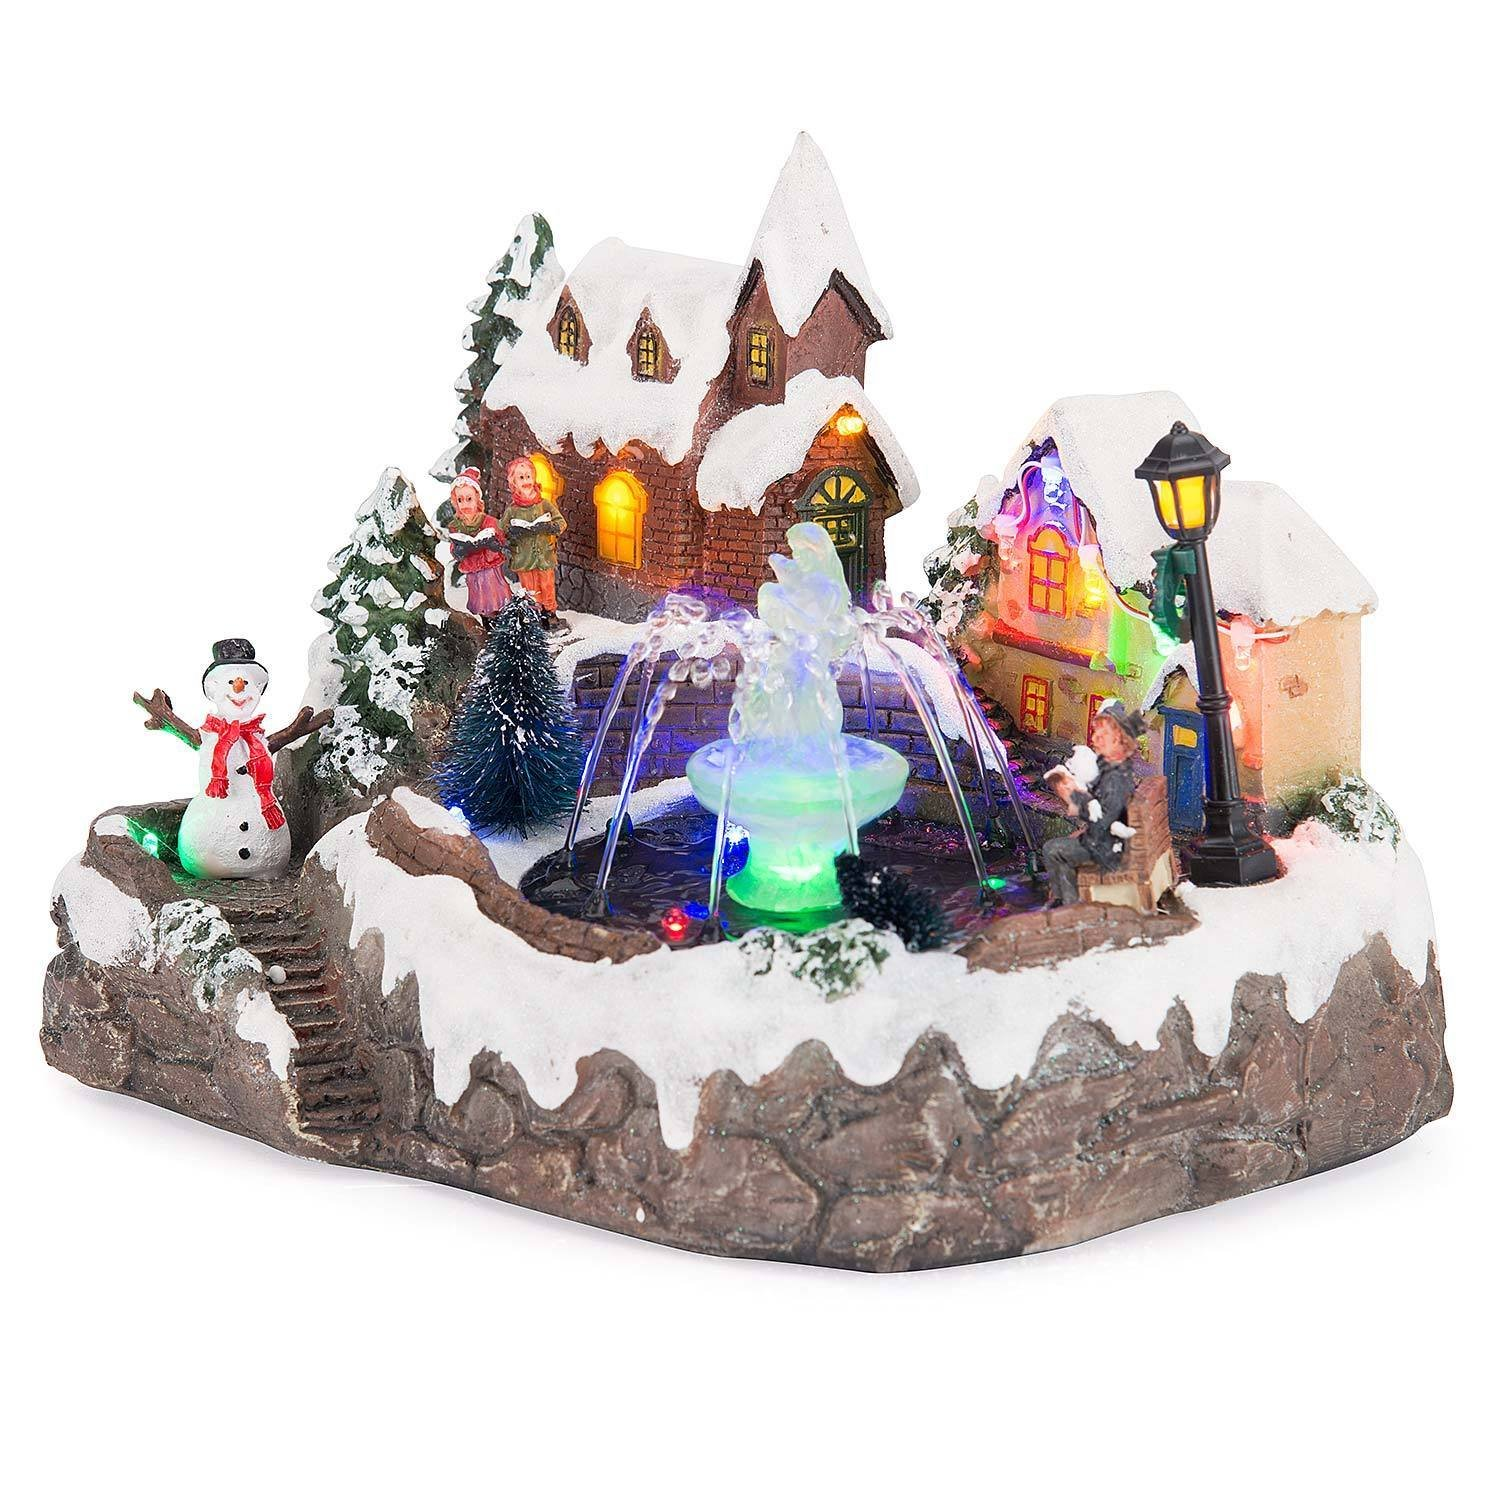 LED Christmas Water Fountain Musical Colour Changing Table Top Village Scene by Christow Decorations (Image #1)